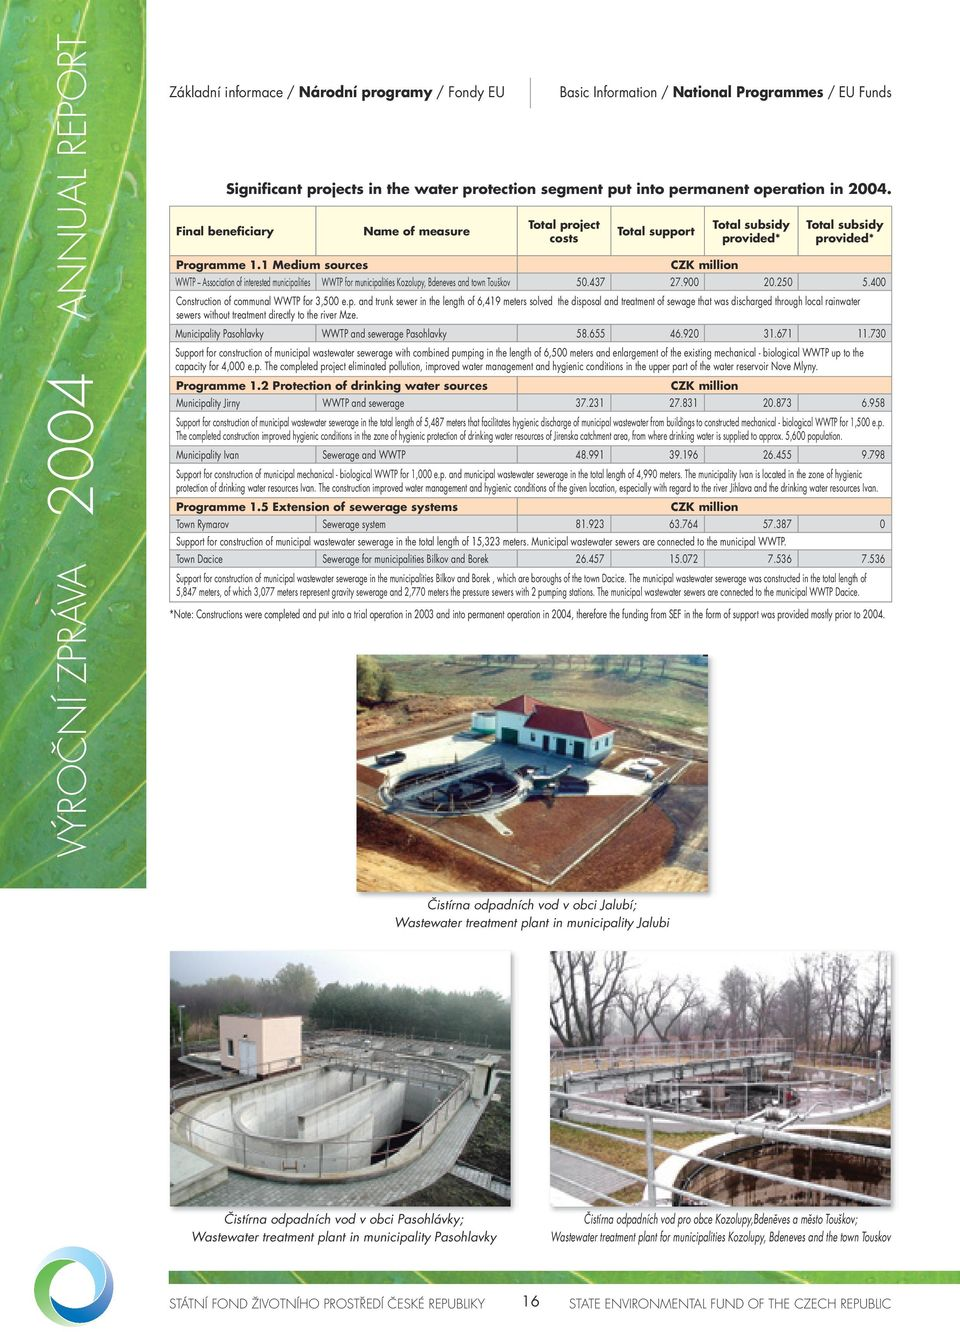 Kozolupy, Bdeneves and town Touškov 50.437 27.900 20.250 5.400 Construction of communal WWTP for 3,500 e.p. and trunk sewer in the length of 6,419 meters solved the disposal and treatment of sewage that was discharged through local rainwater sewers without treatment directly to the river Mze.